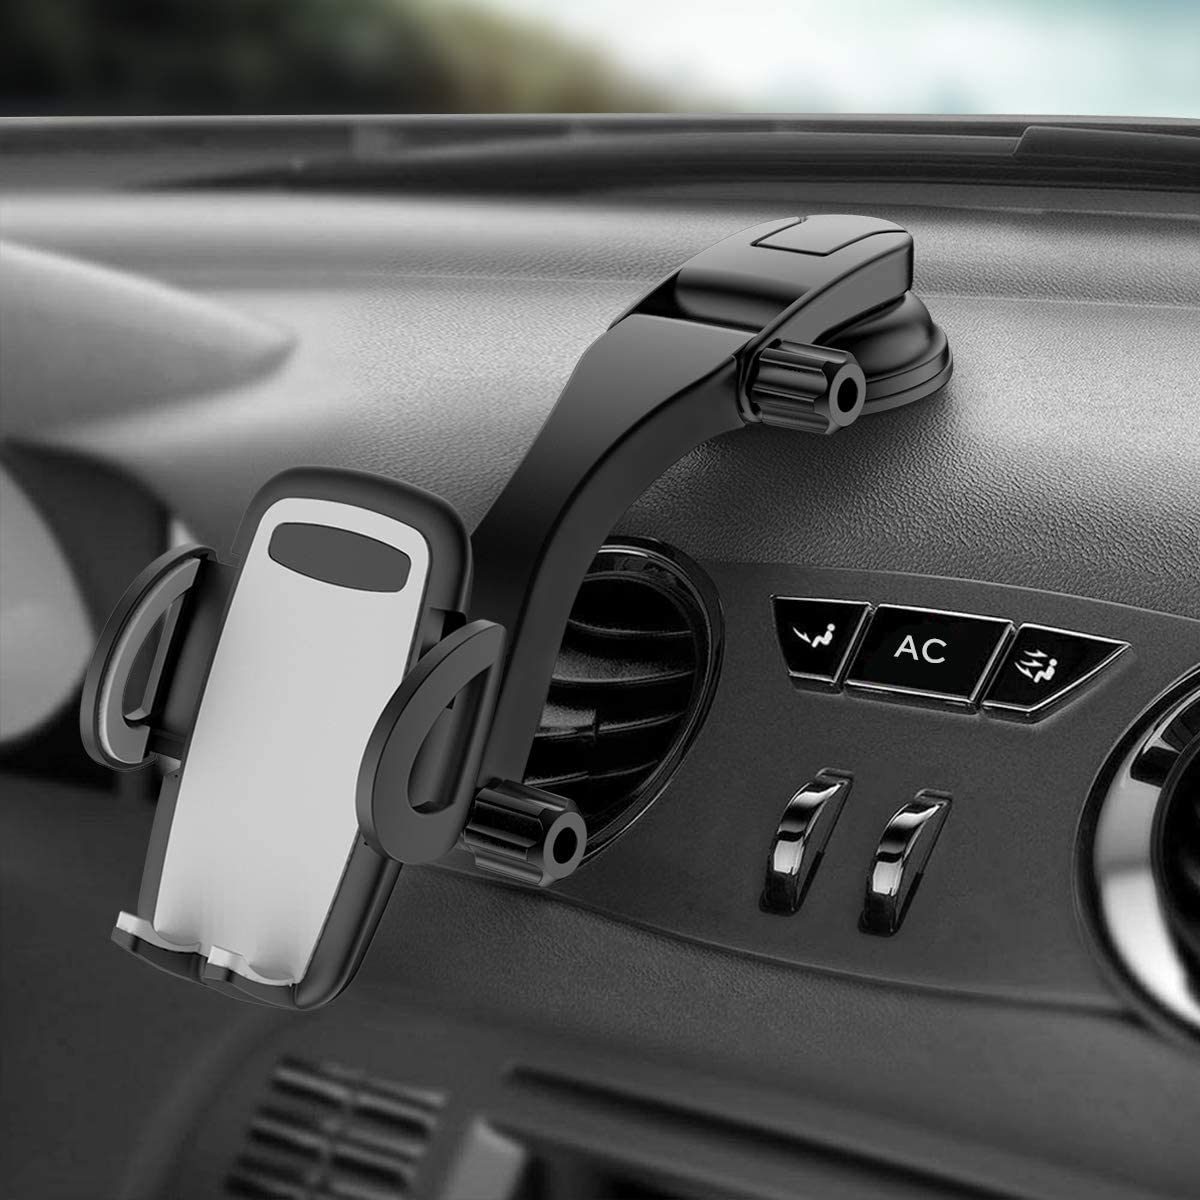 Dashboard Car Phone Holder Car Phone Mount Washable Strong Sticky Gel Pad with One-Touch Design Compatible iPhone 11 pro,11 pro max,X,XS,XR,8,7,6 Plus,Galaxy S7,8,9,10,Google Nexus